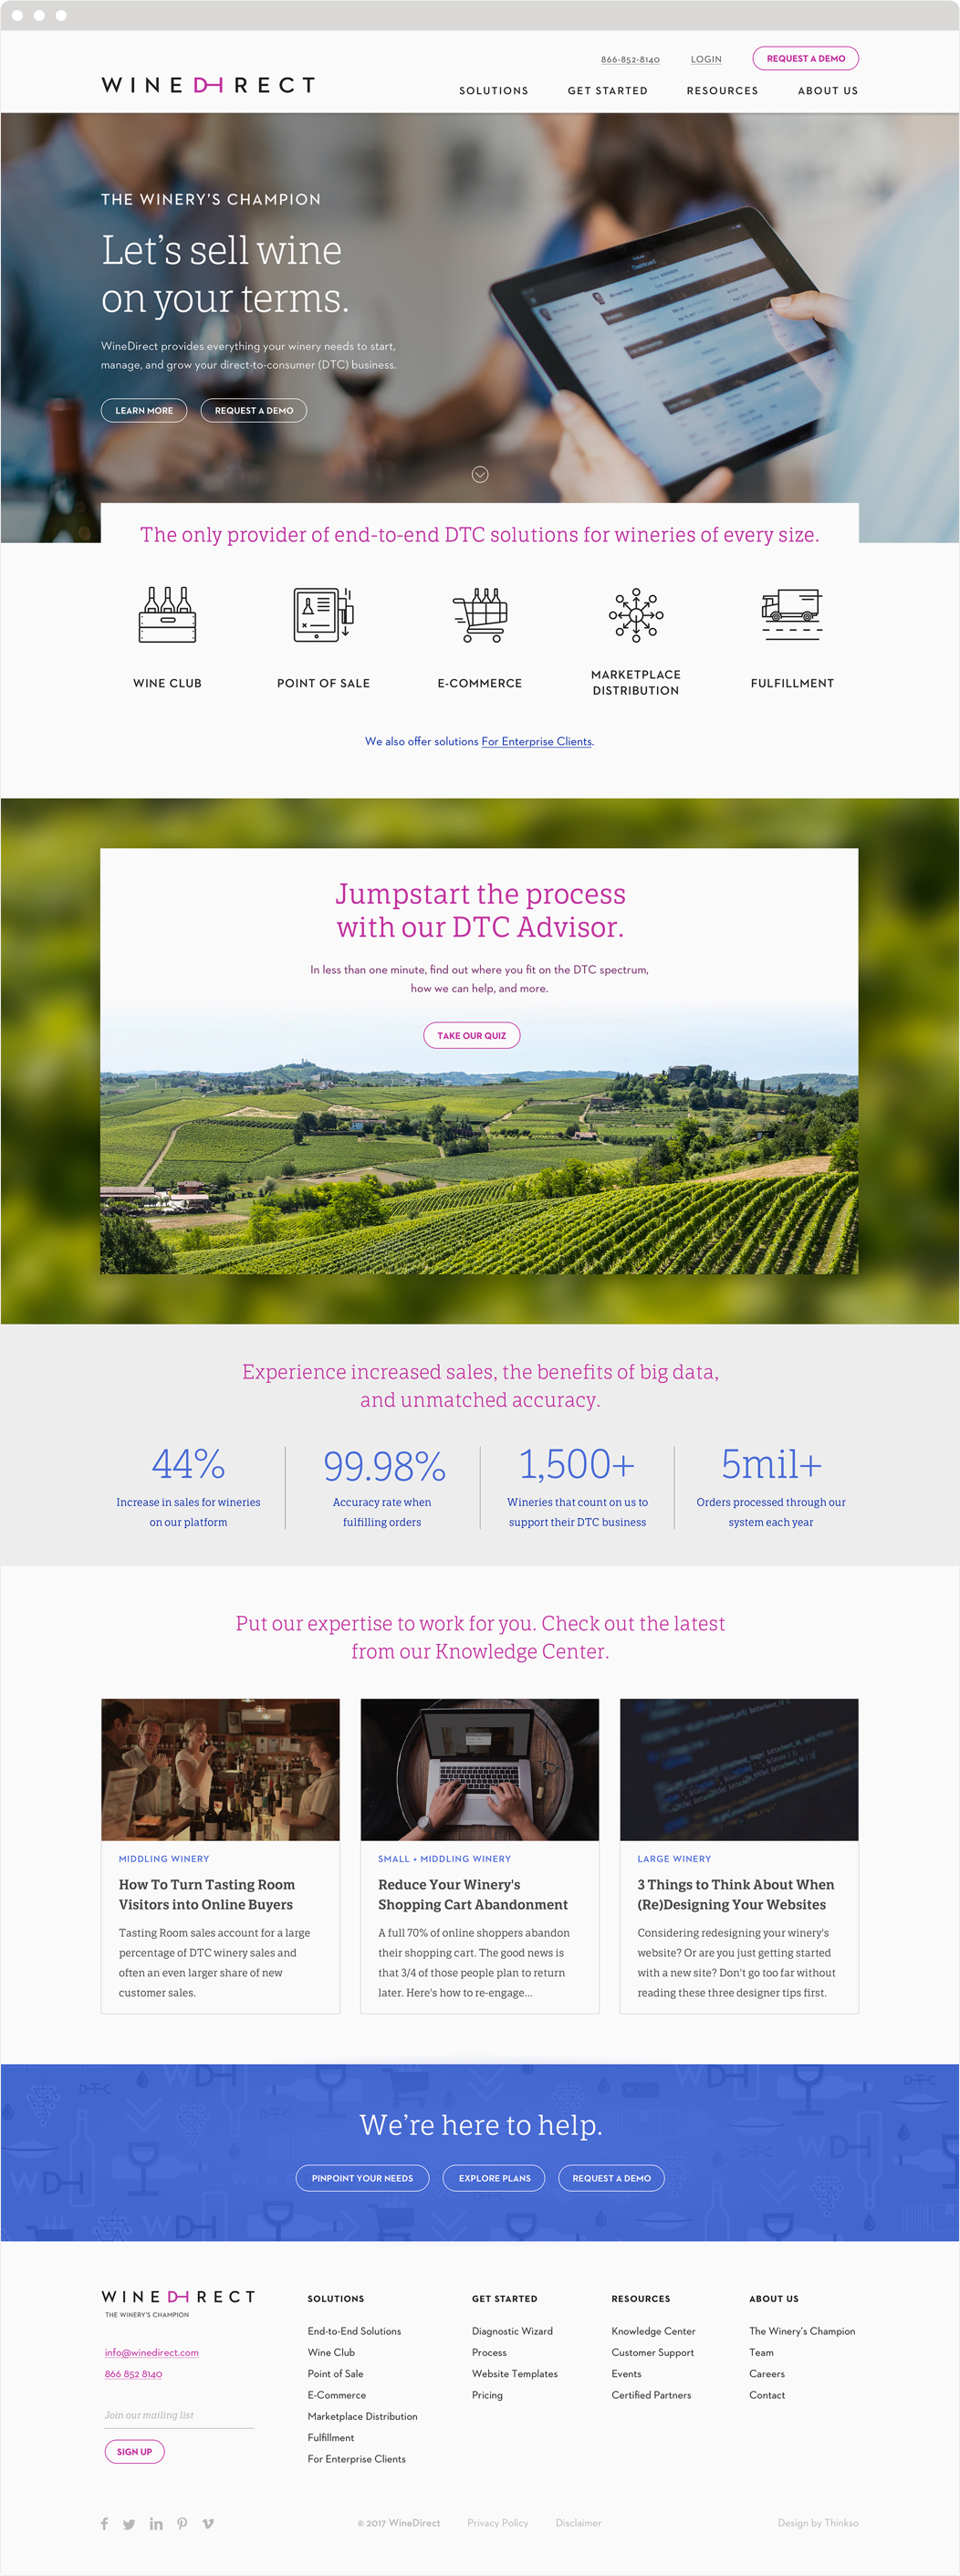 """WineDirect website featuring new tagline, """"The Winery's Champion,"""" and DTC Advisor wizard for selling wine directly to consumers."""